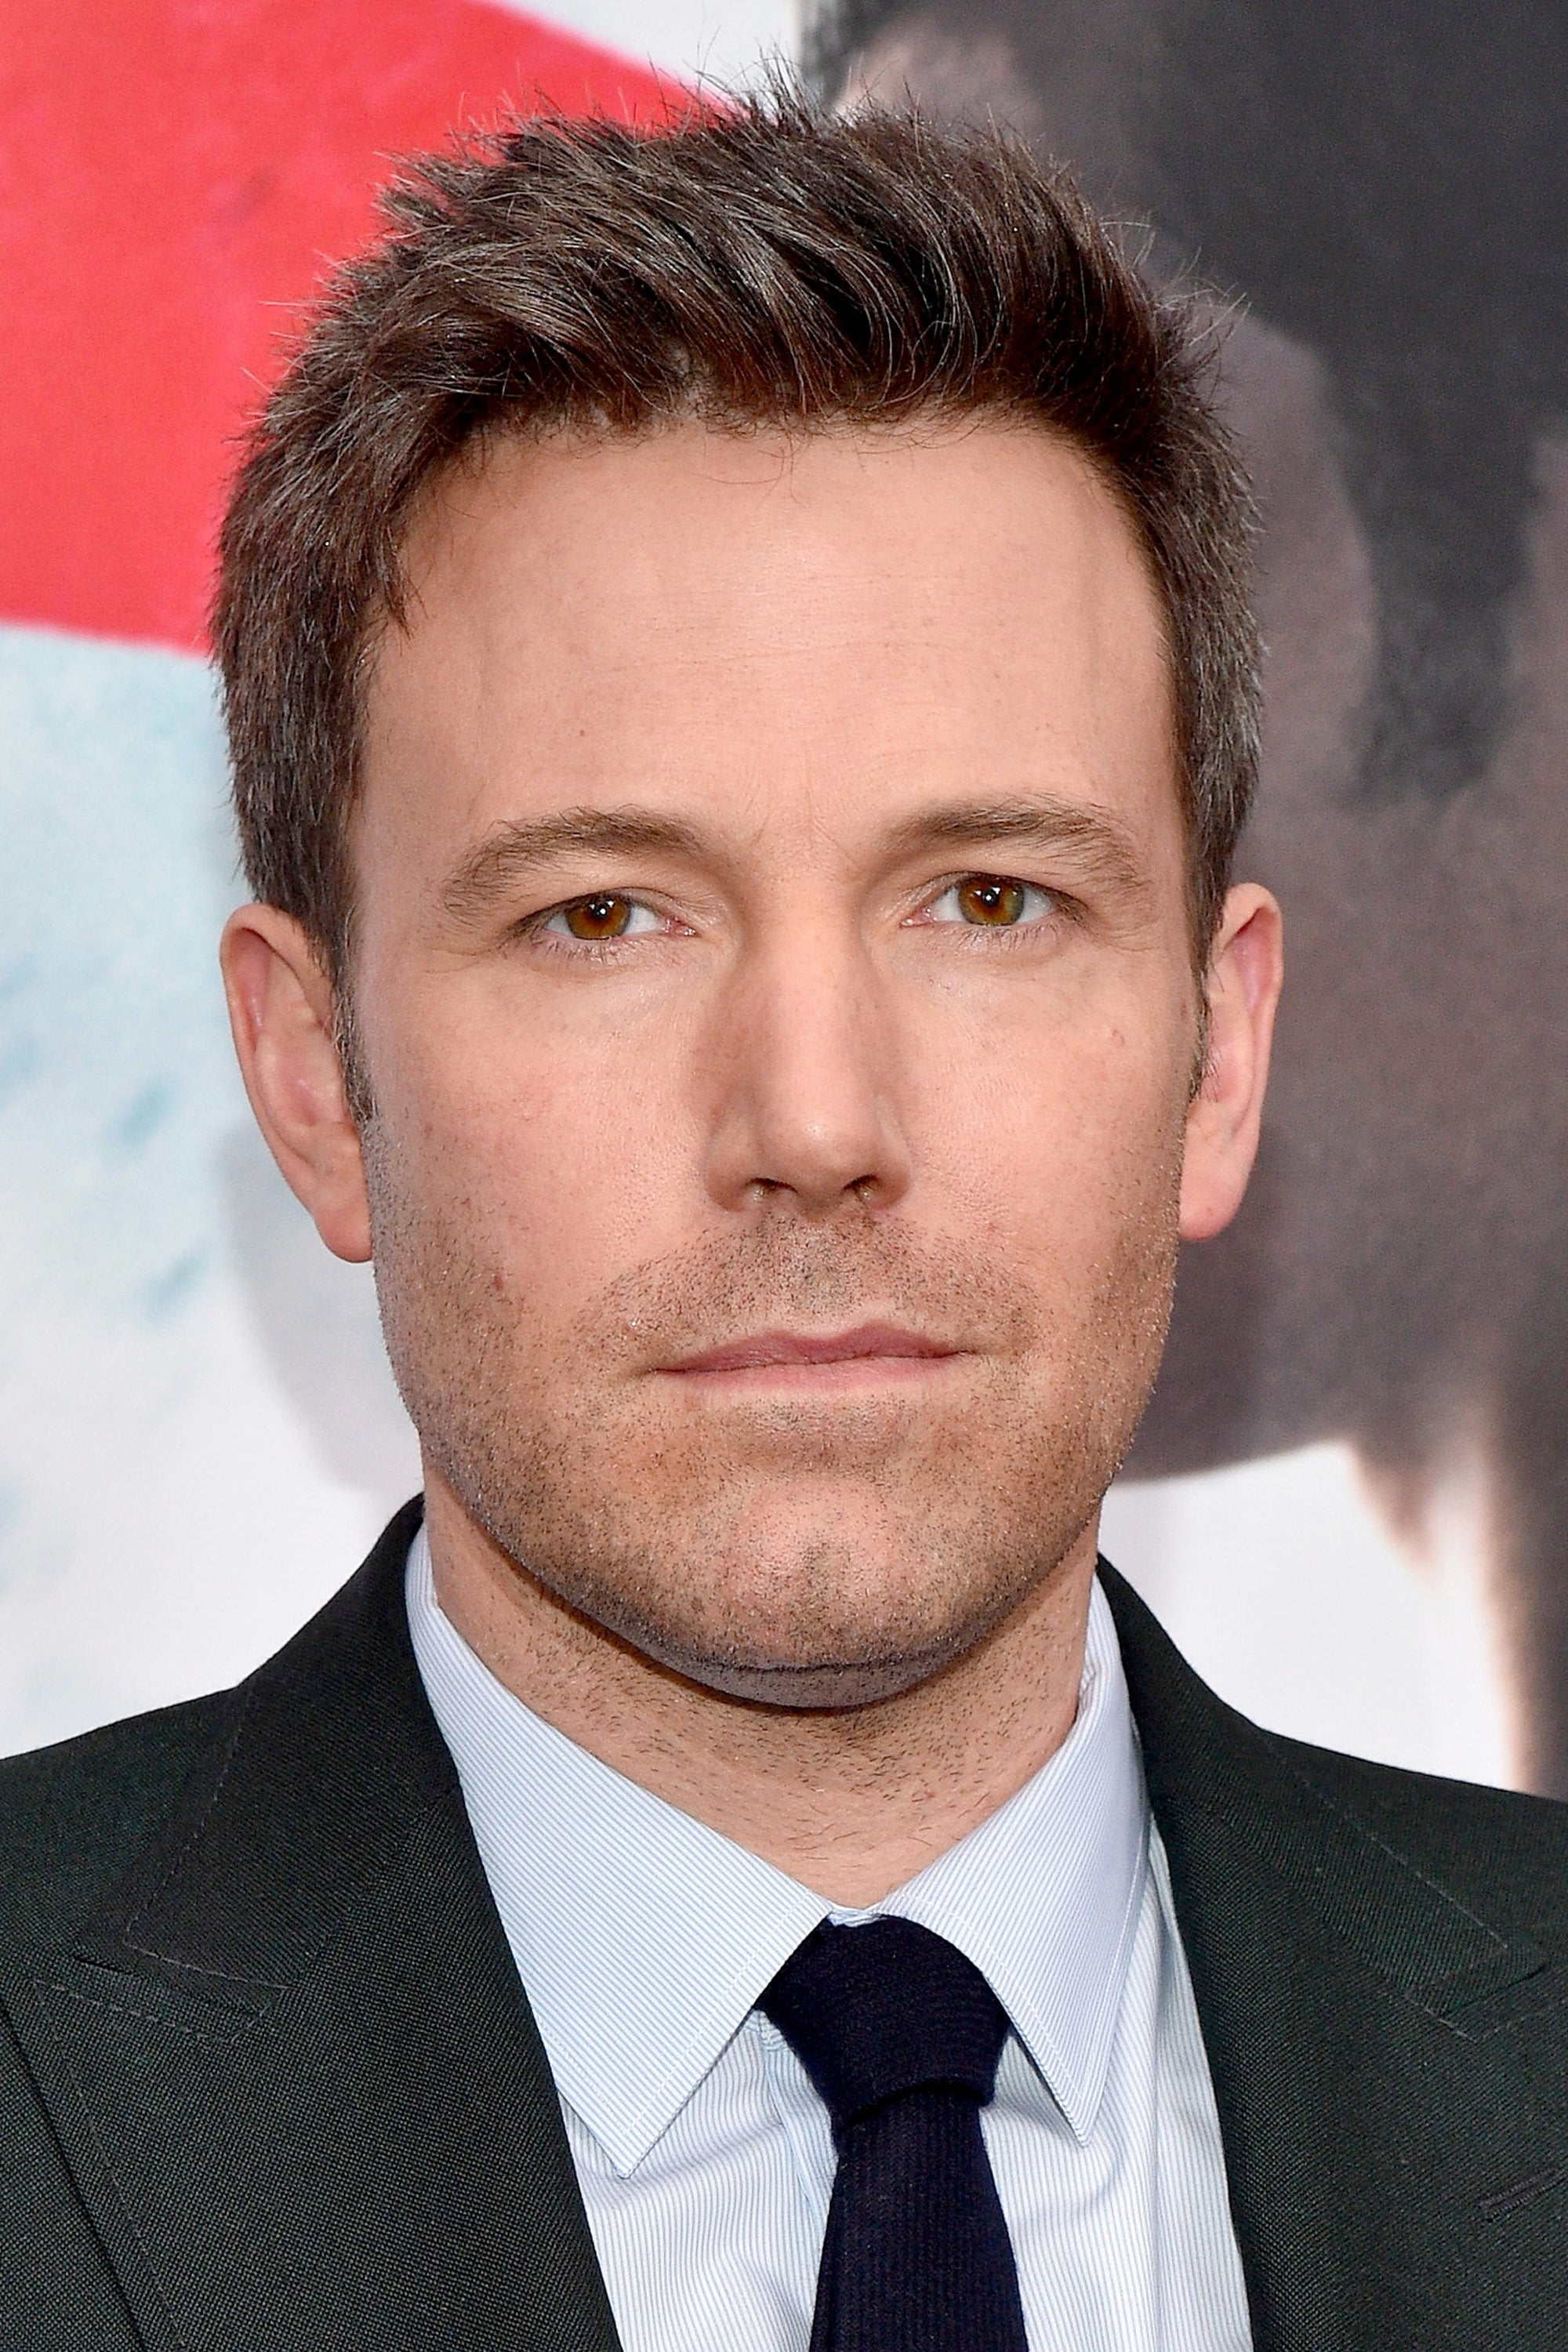 Ben Affleck - Profile Images — The Movie Database (TMDb) Ben Affleck